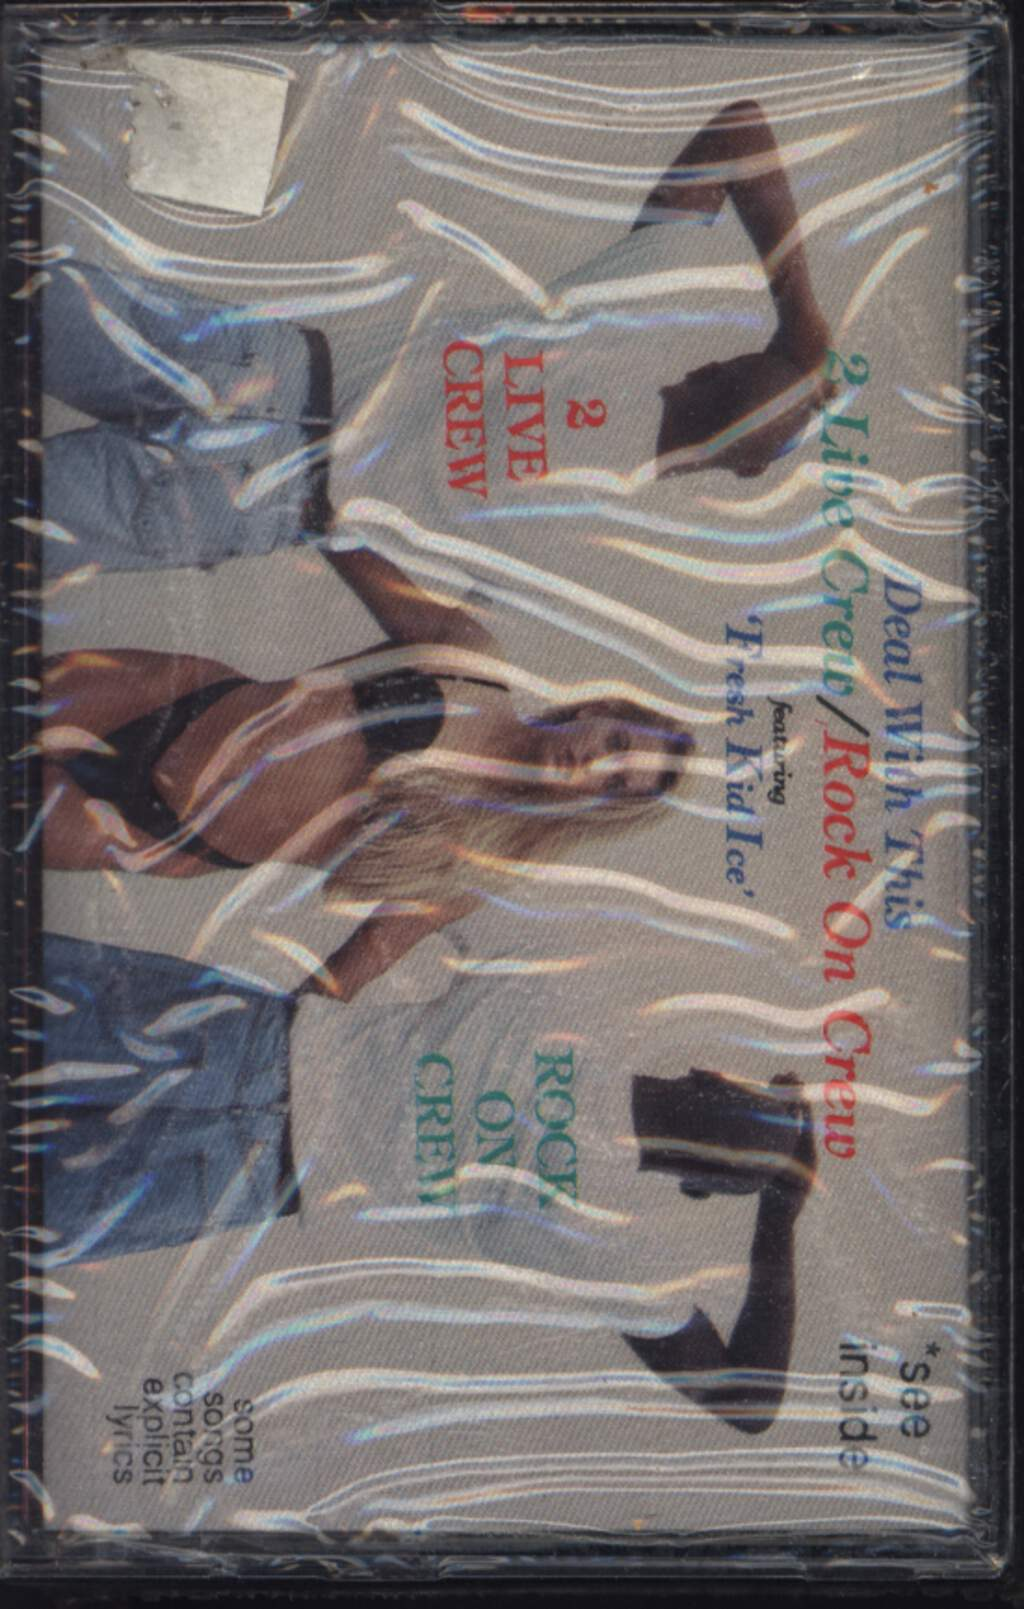 The 2 Live Crew: Deal With This, Compact Cassette